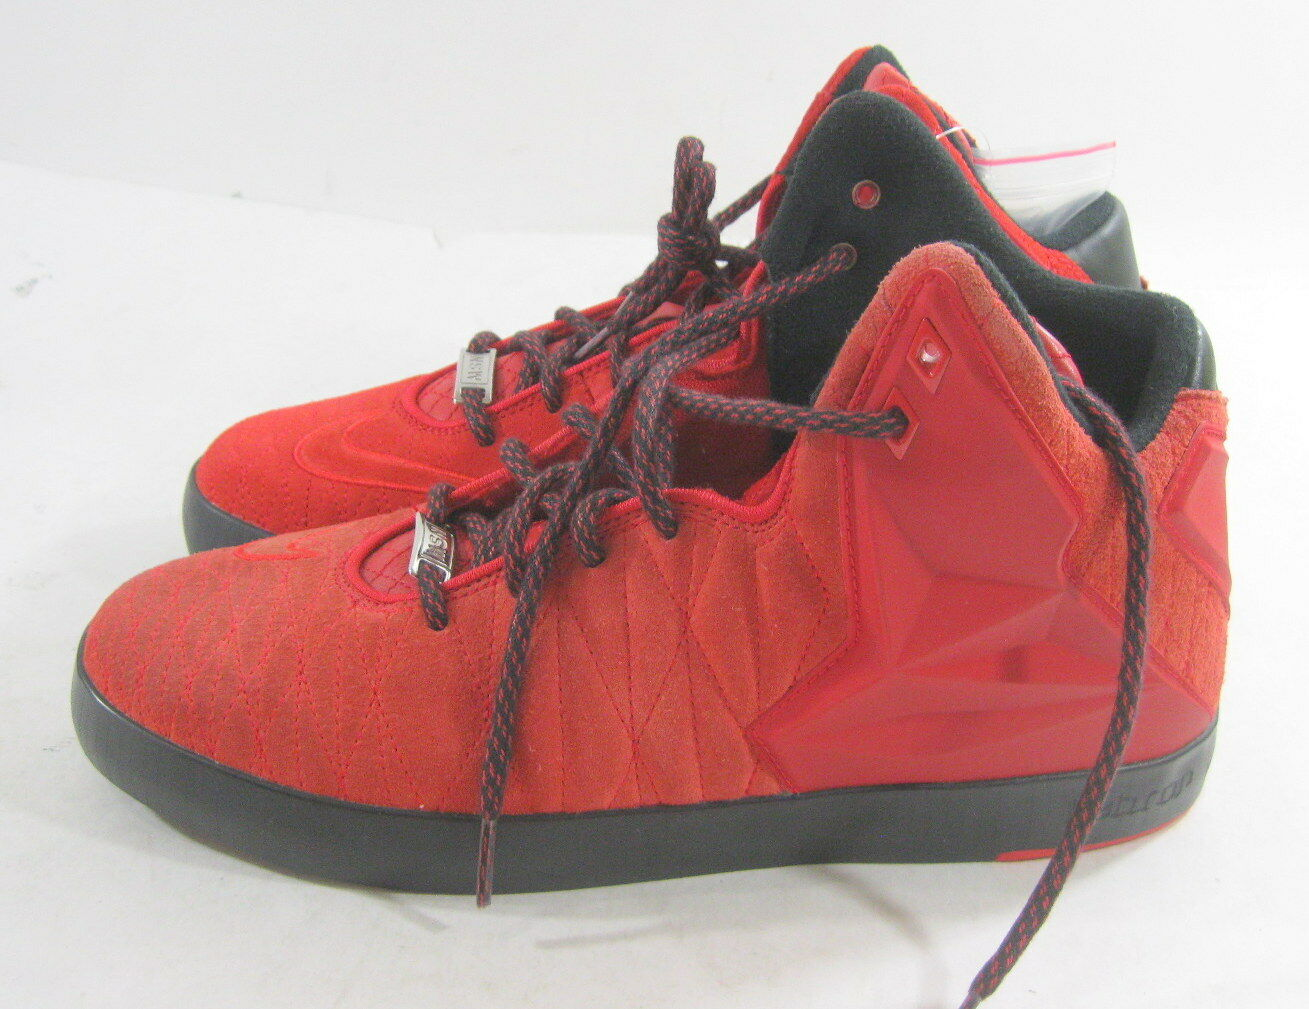 separation shoes e84c5 1cc00 ... Lebron 11 Nsw Lifestyle Red Black University Red Red Red 616766 600  Size 9 ...